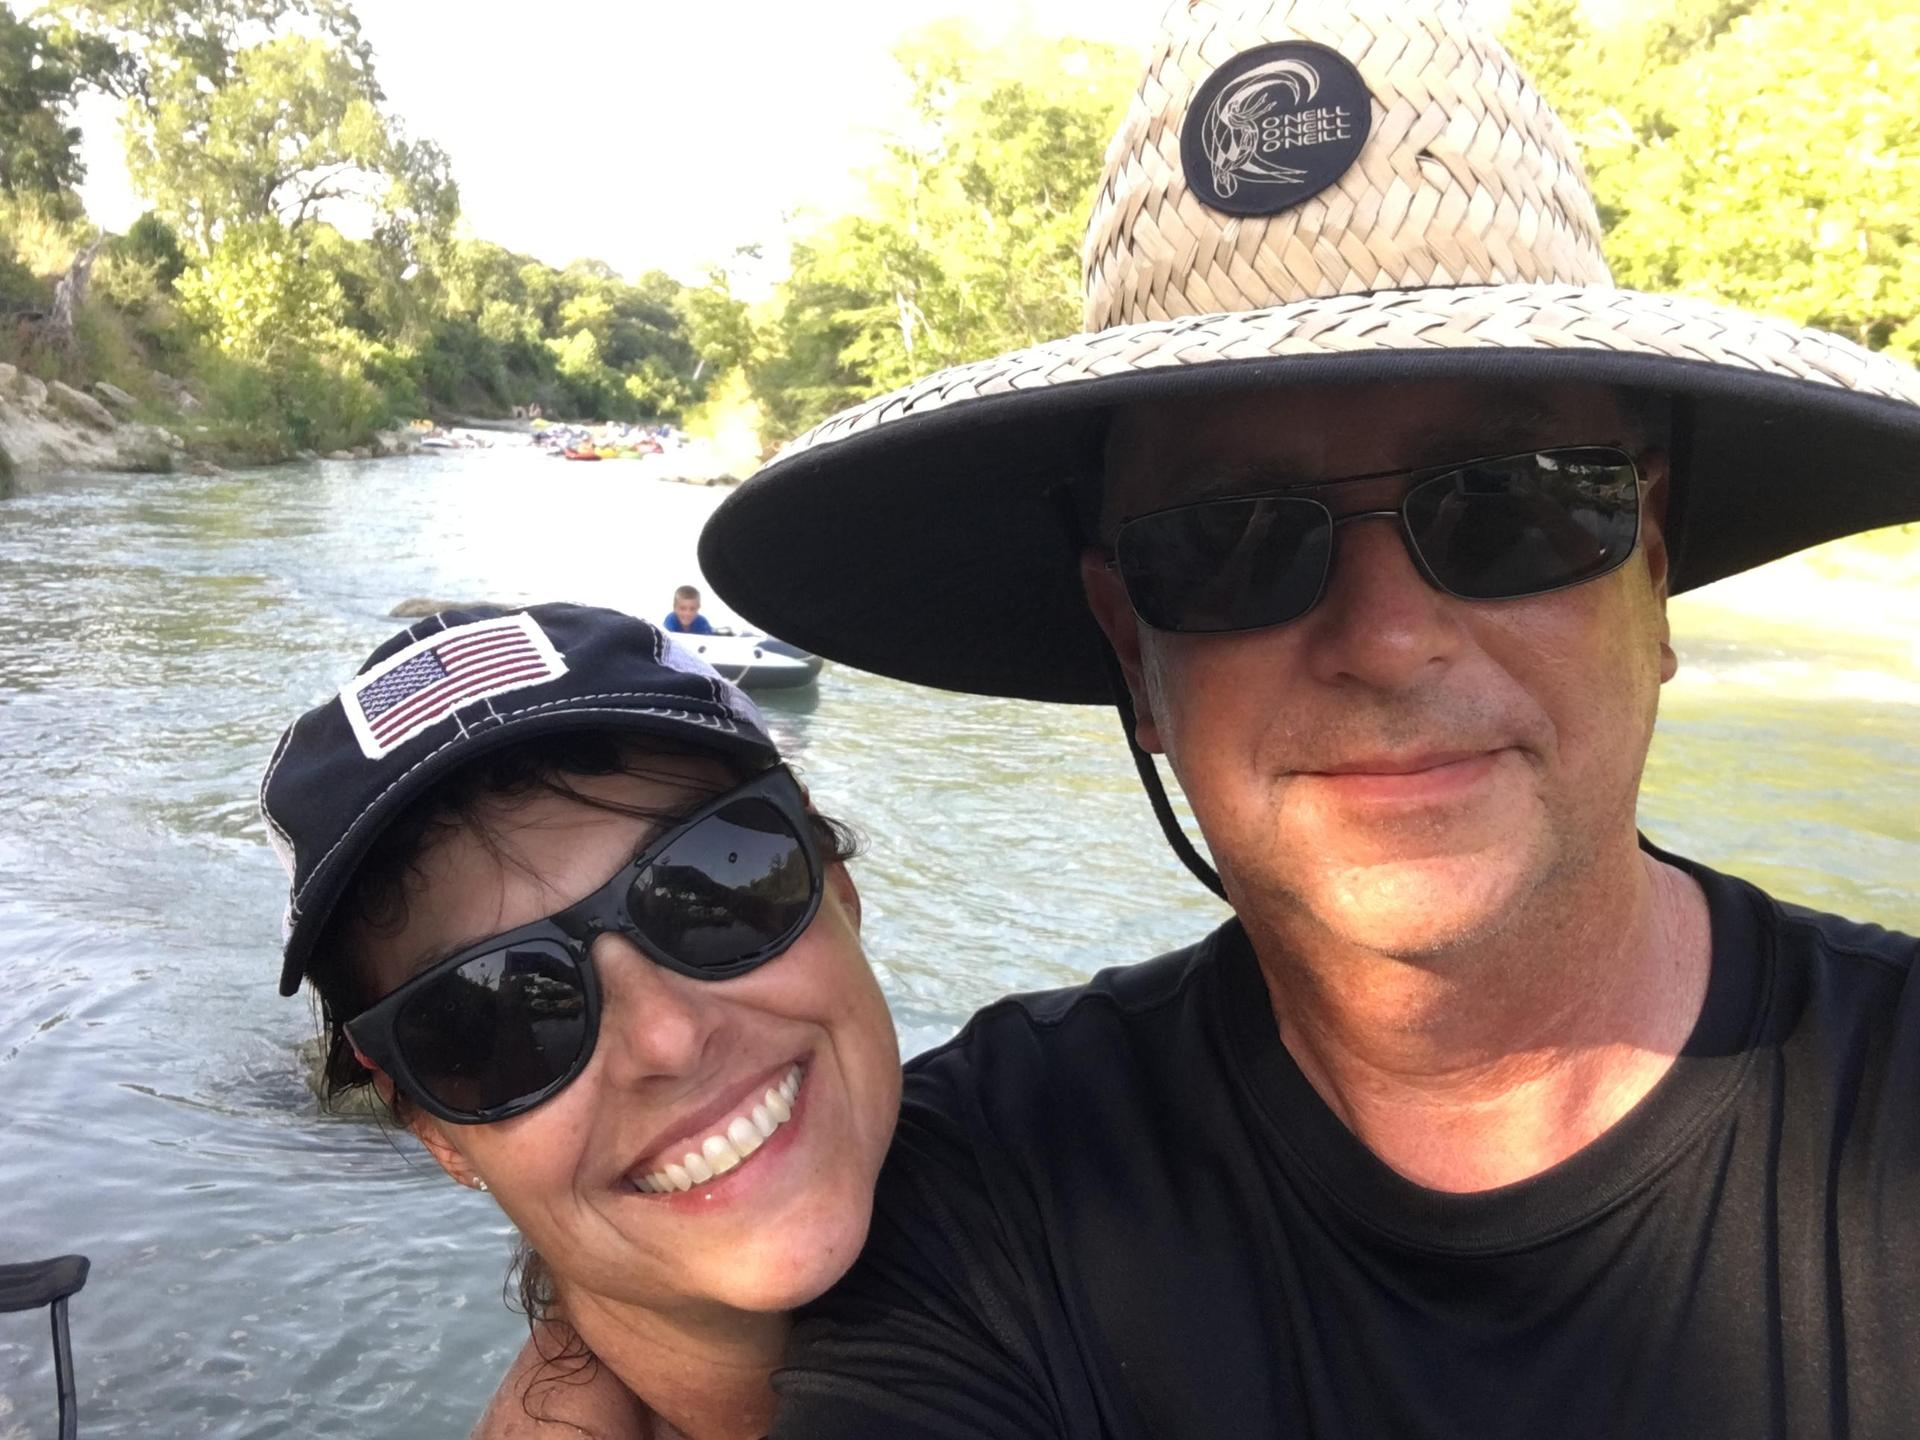 Fun times on the San Marcos River!